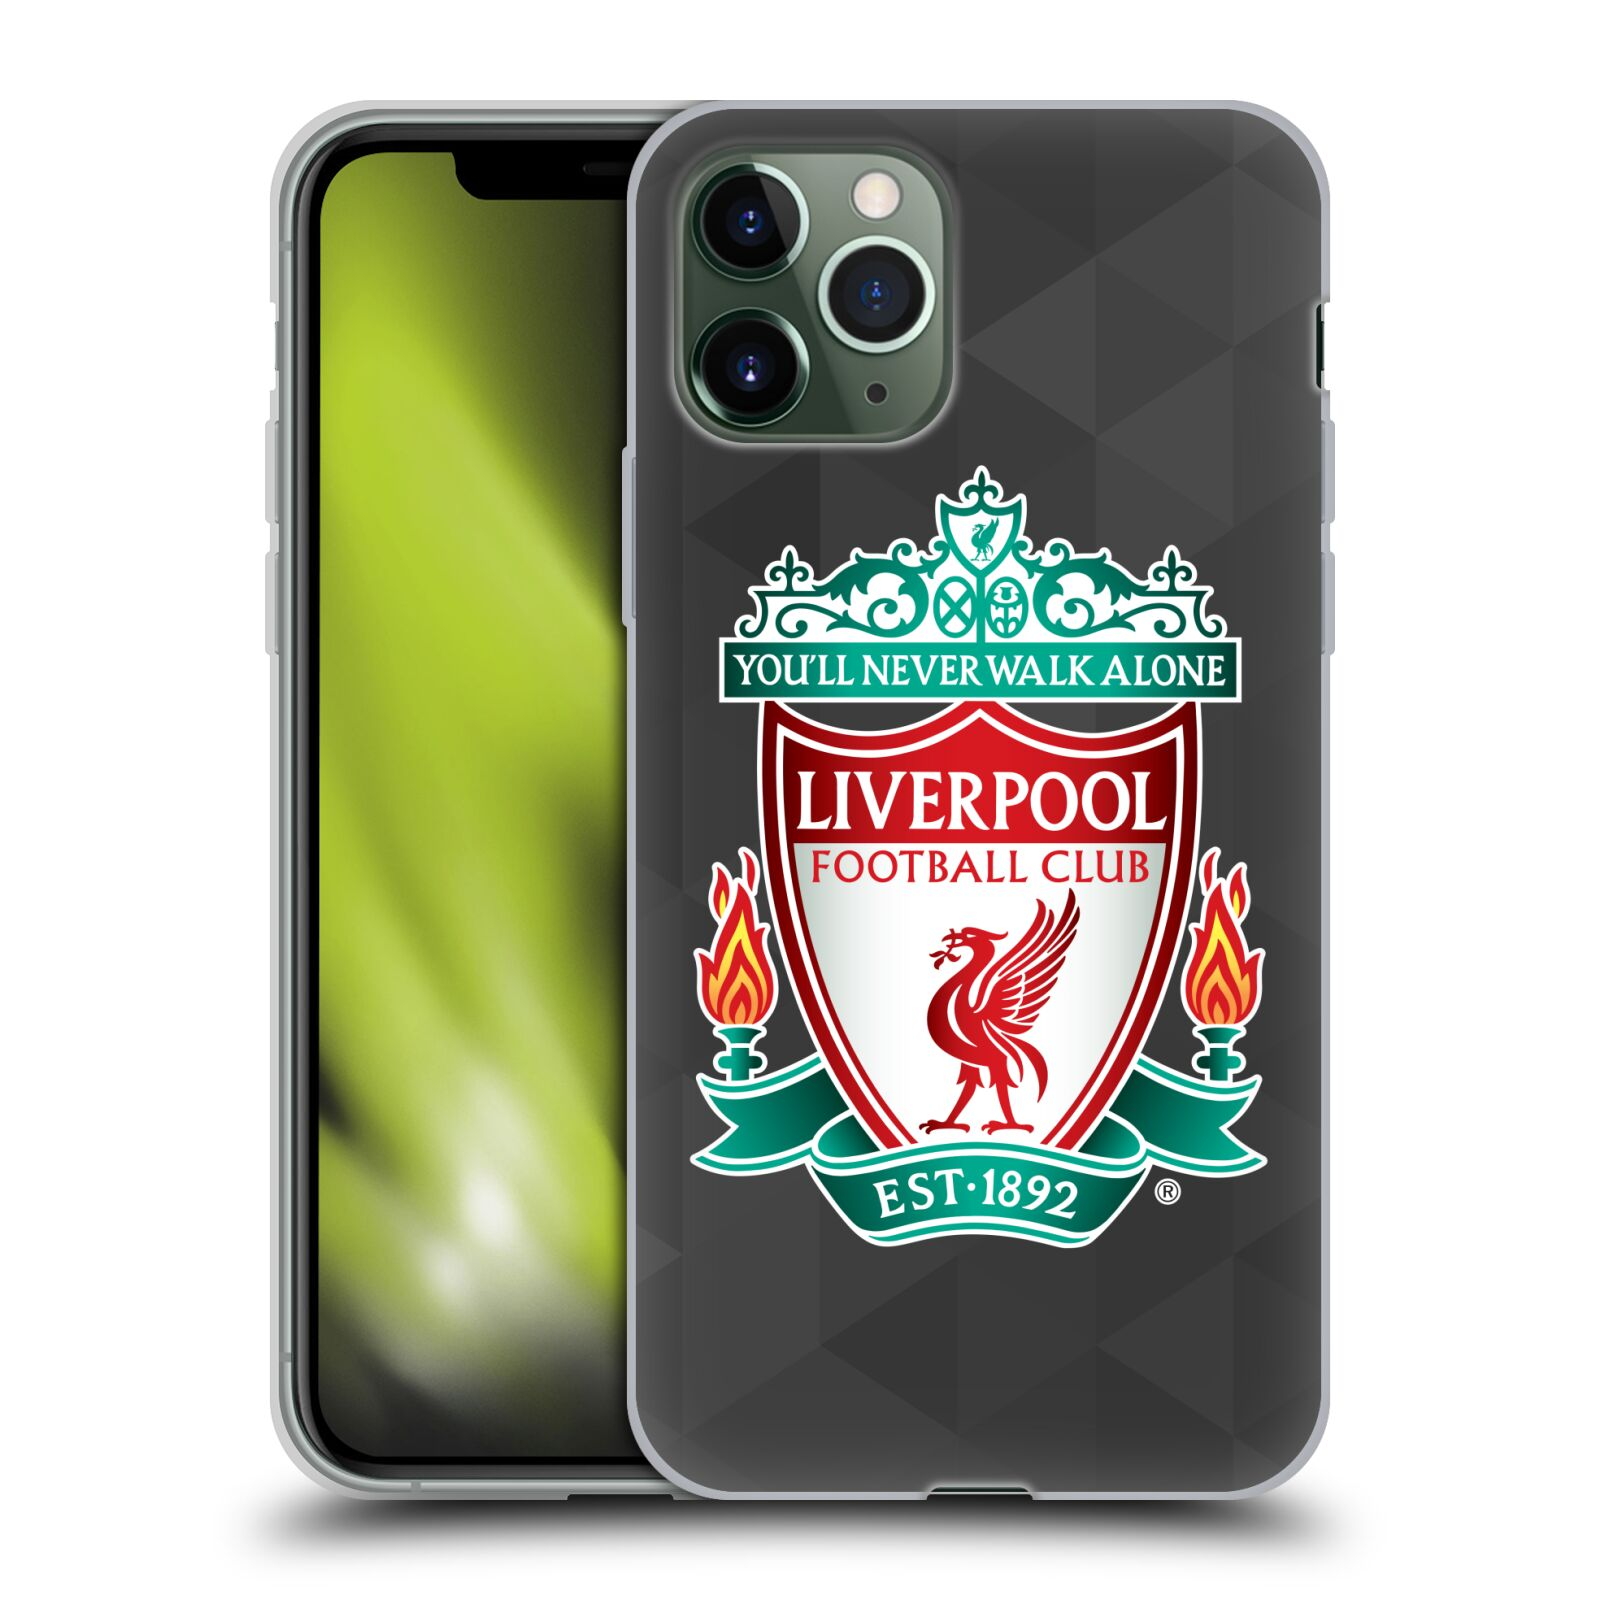 obal na telefon iphone 6 | Silikonové pouzdro na mobil Apple iPhone 11 Pro - Head Case - ZNAK LIVERPOOL FC OFFICIAL GEOMETRIC BLACK